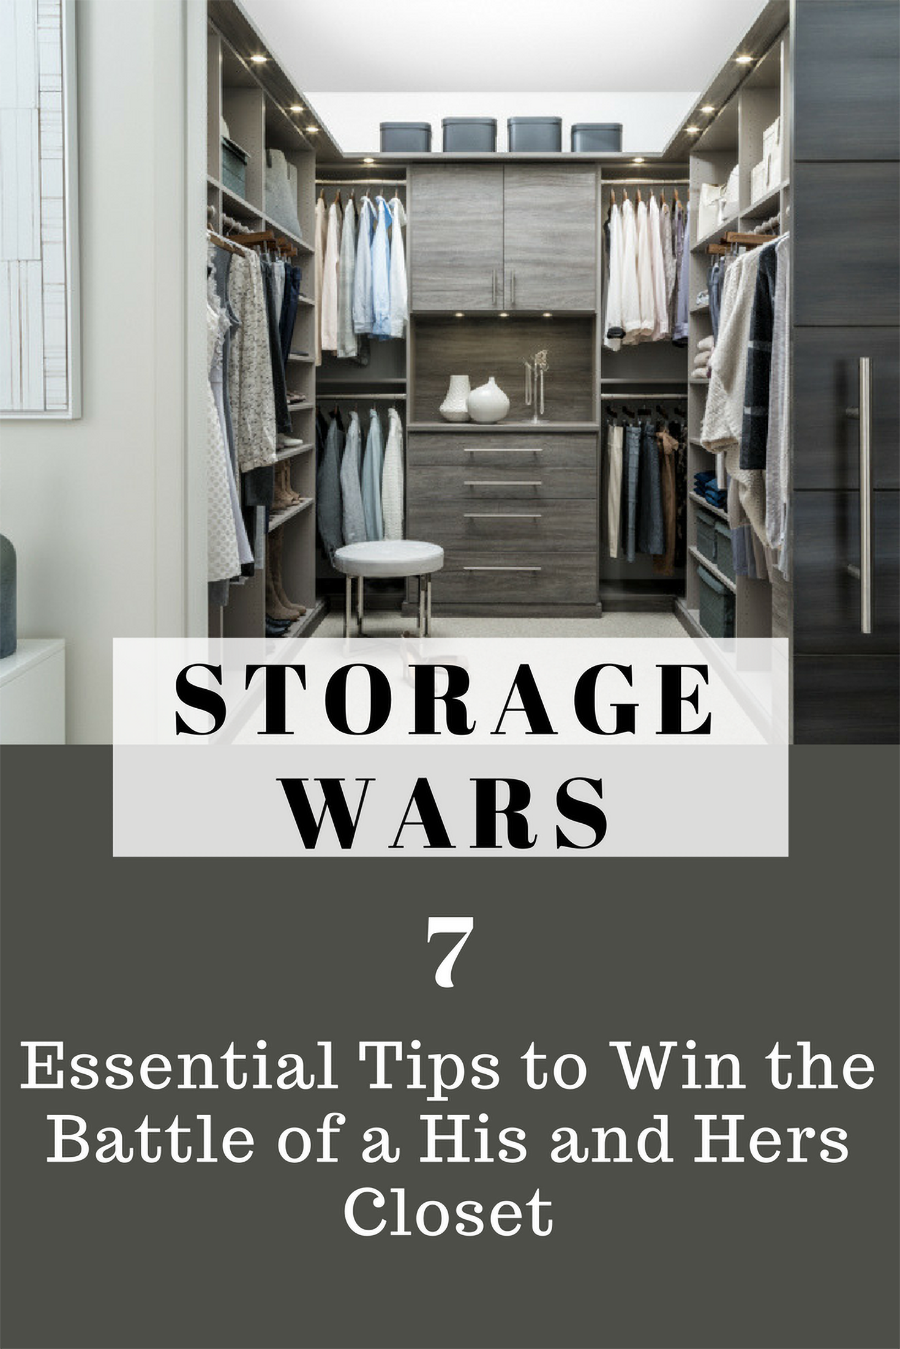 13 do separate your closet to stay together his and hers closet pickerington ohio | Innovate Home Org | #ClosetStorage #ClosetSystem #Organization